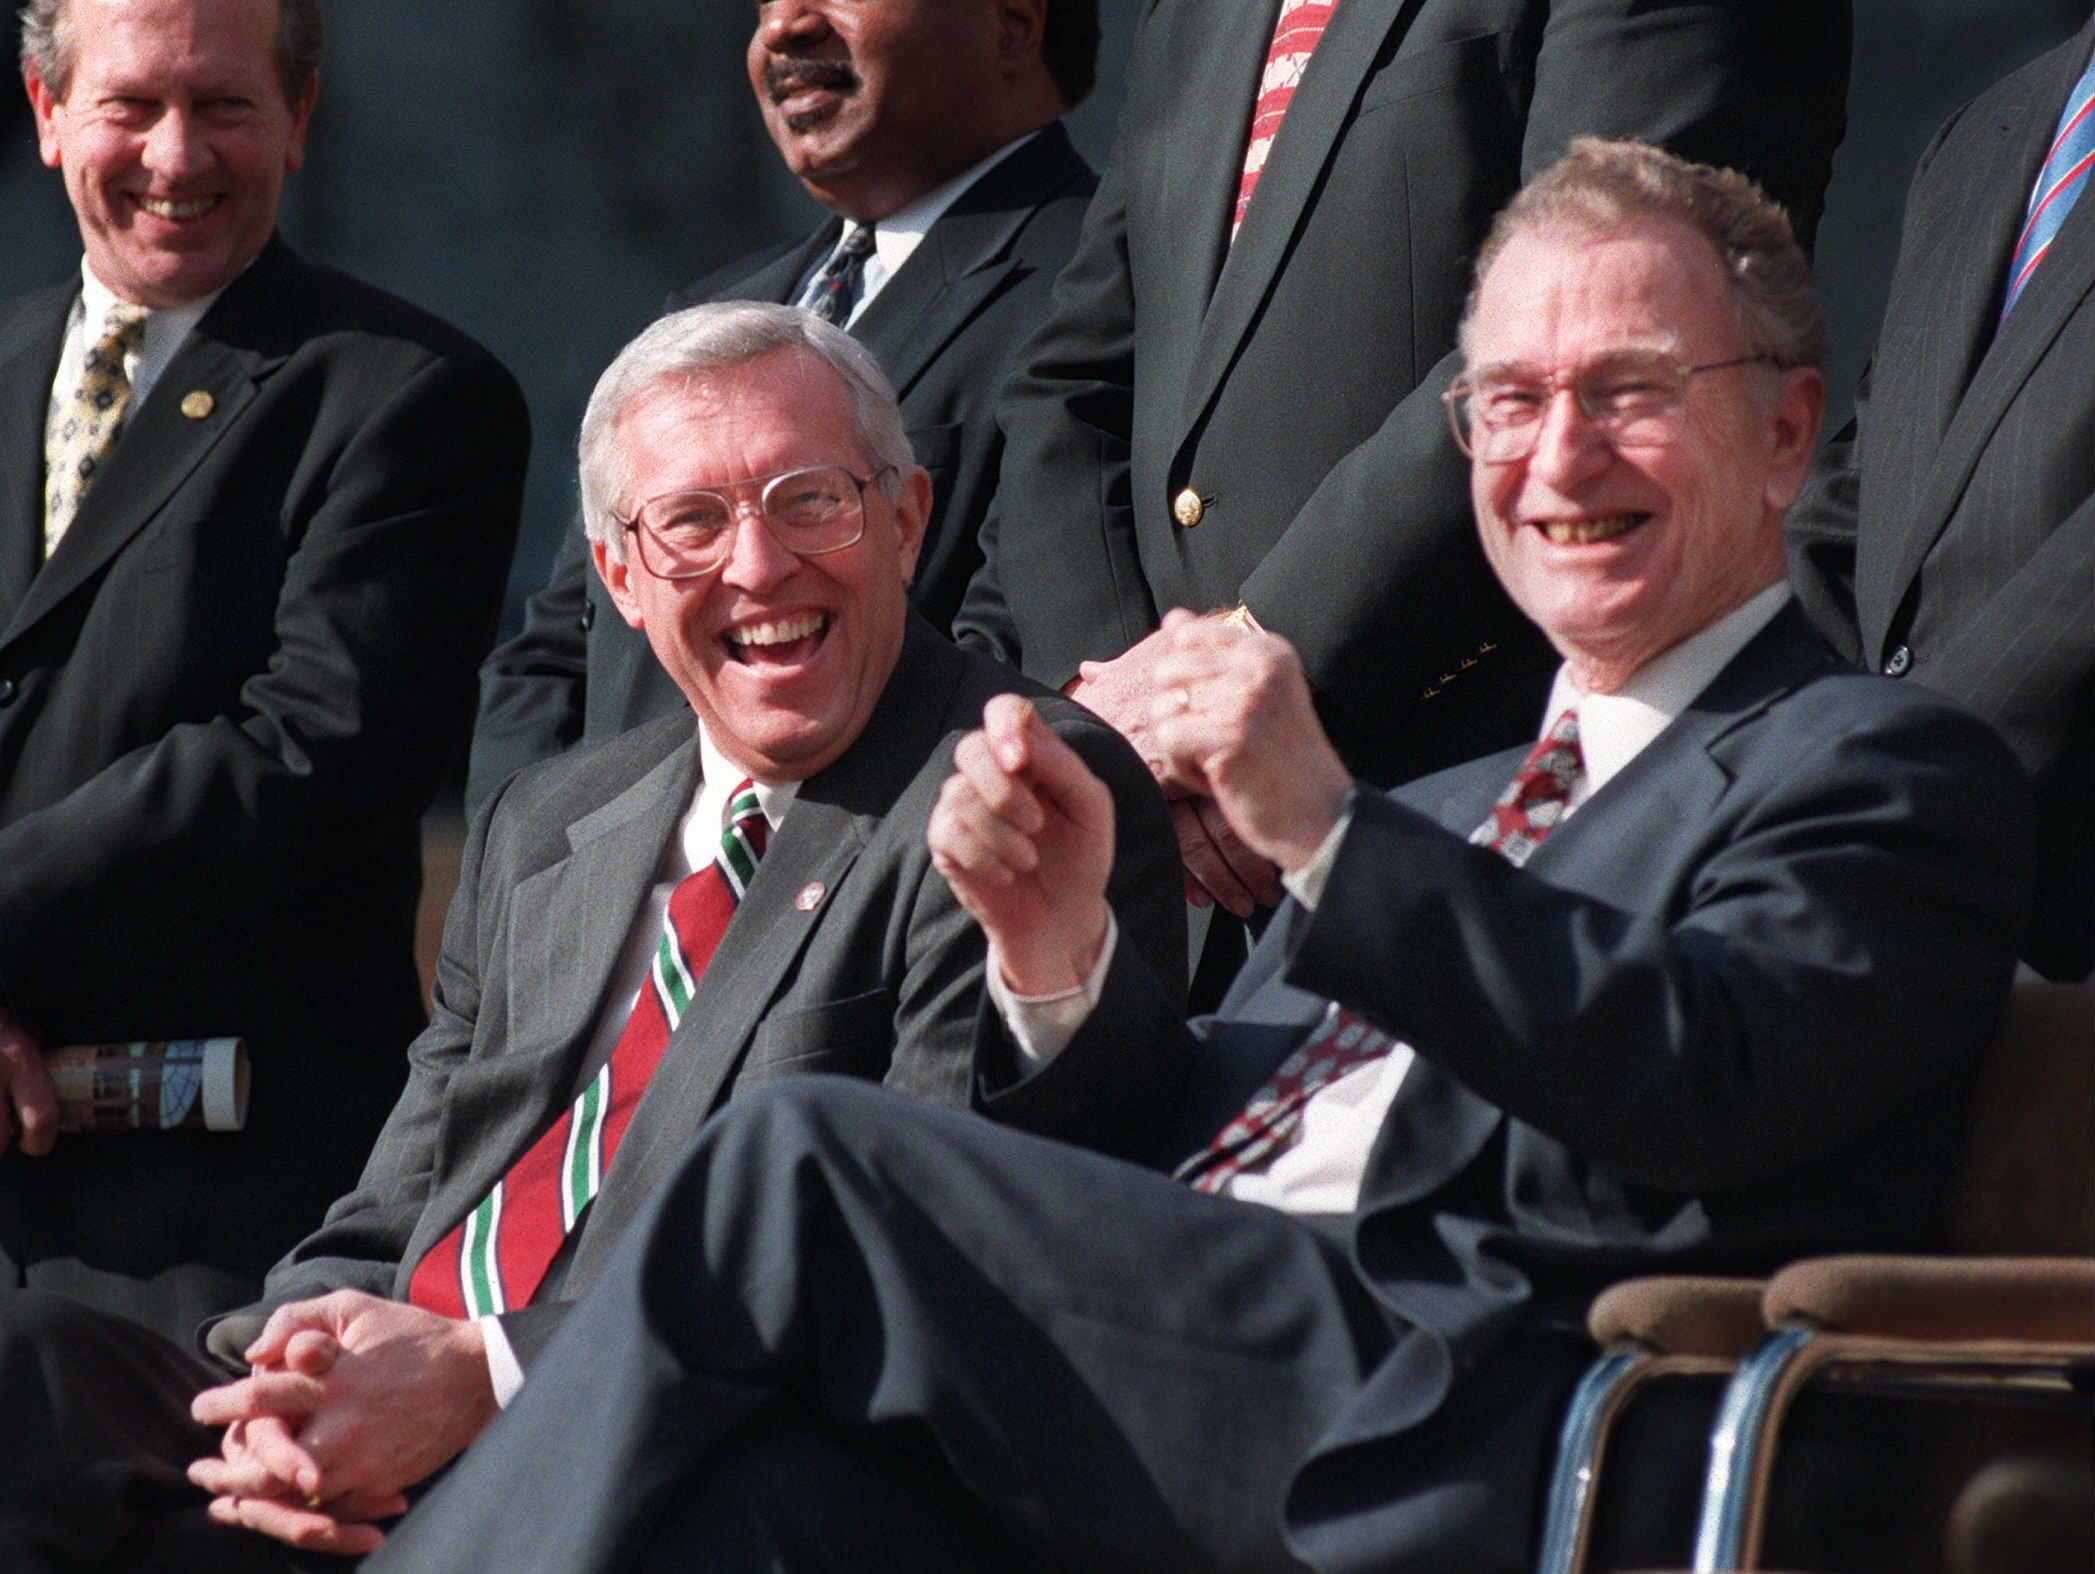 Gov. Don Sundquist, left, shares a laugh with Lt. Gov. John Wilder during a press conference announcing the construction of the Federal Express Business Information Sciences Center on Jan. 30, 1998 at the University of Memphis.